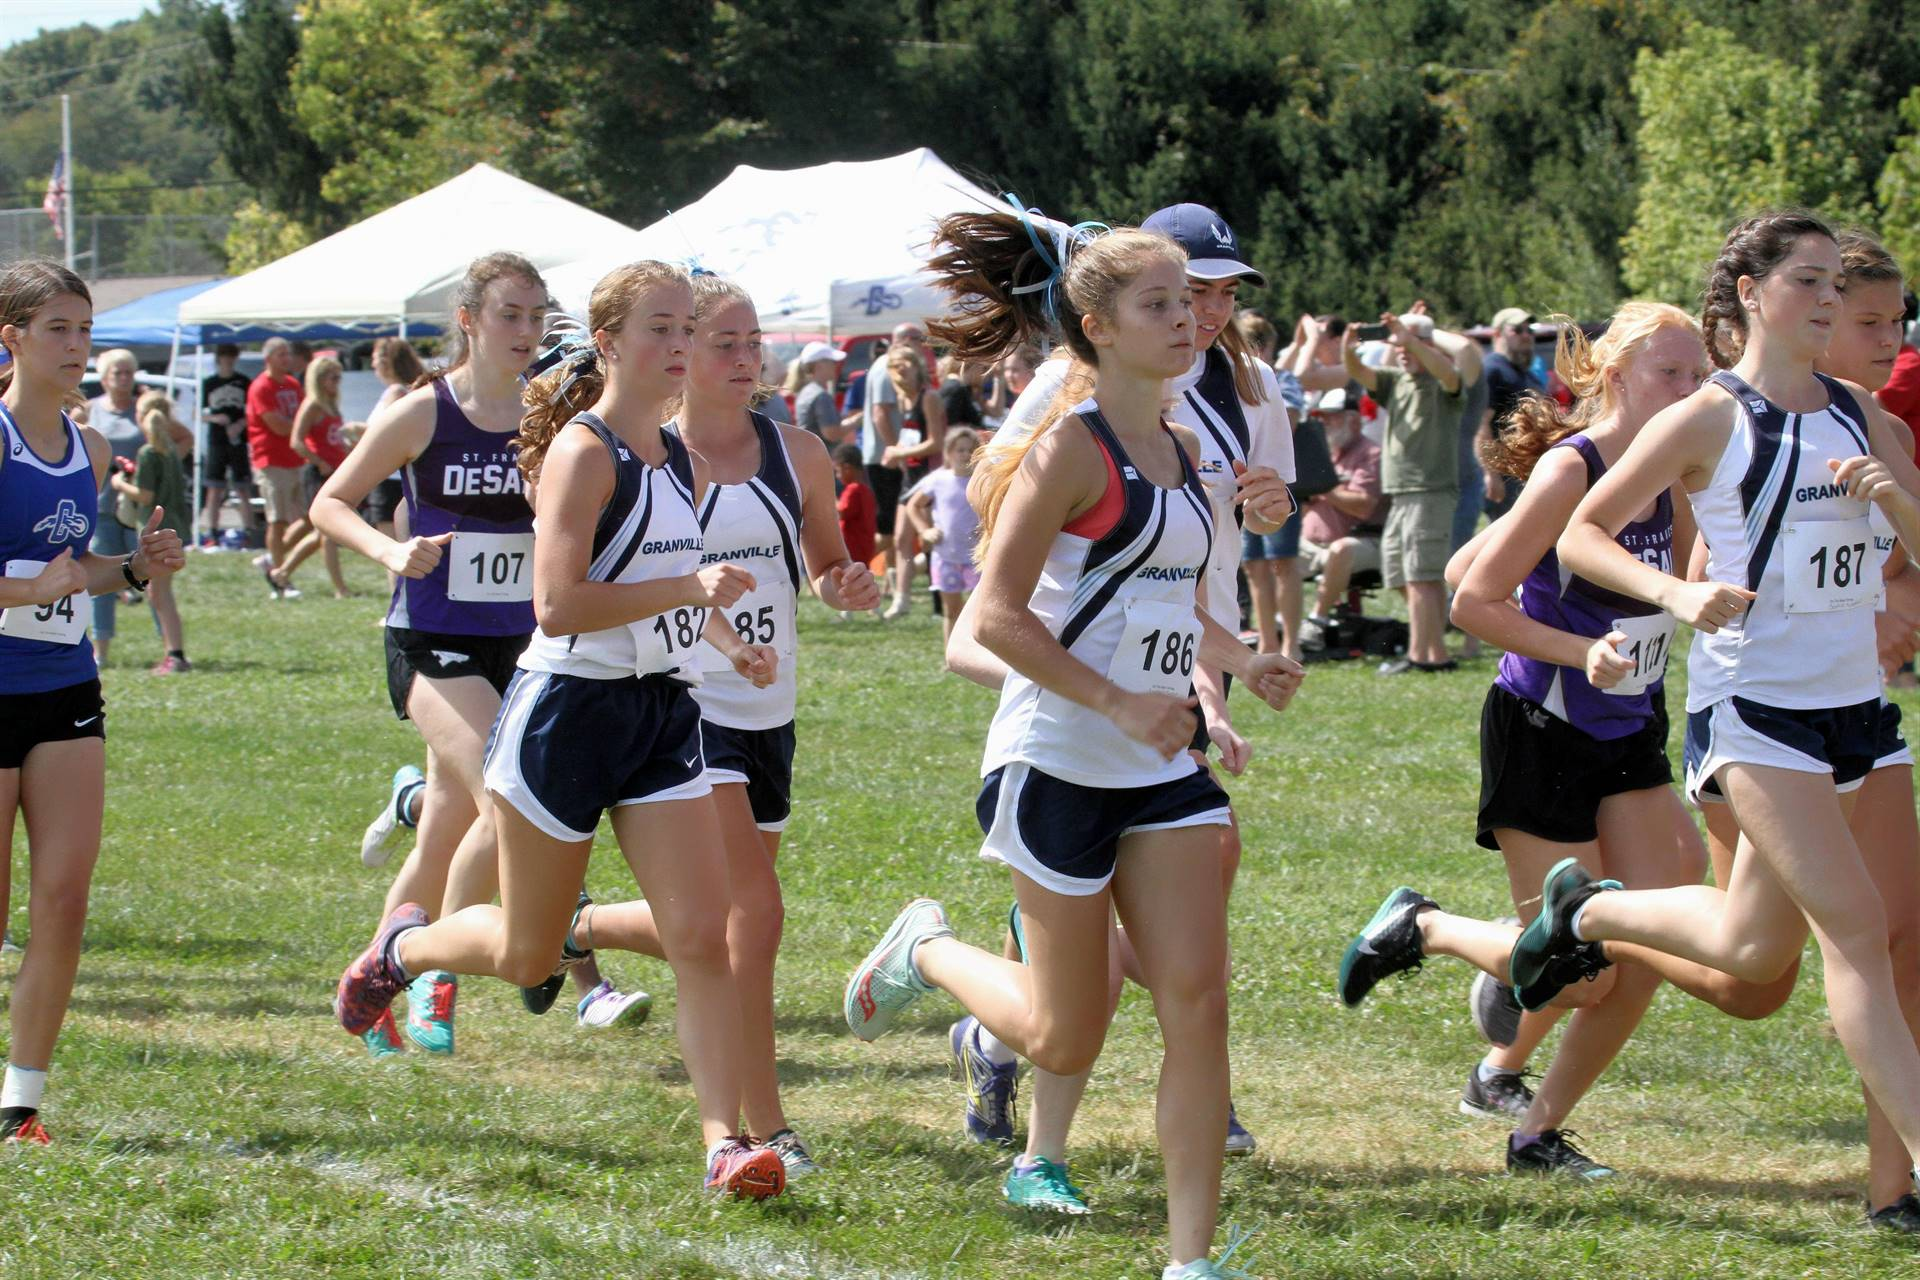 Girls competing in Cross Country